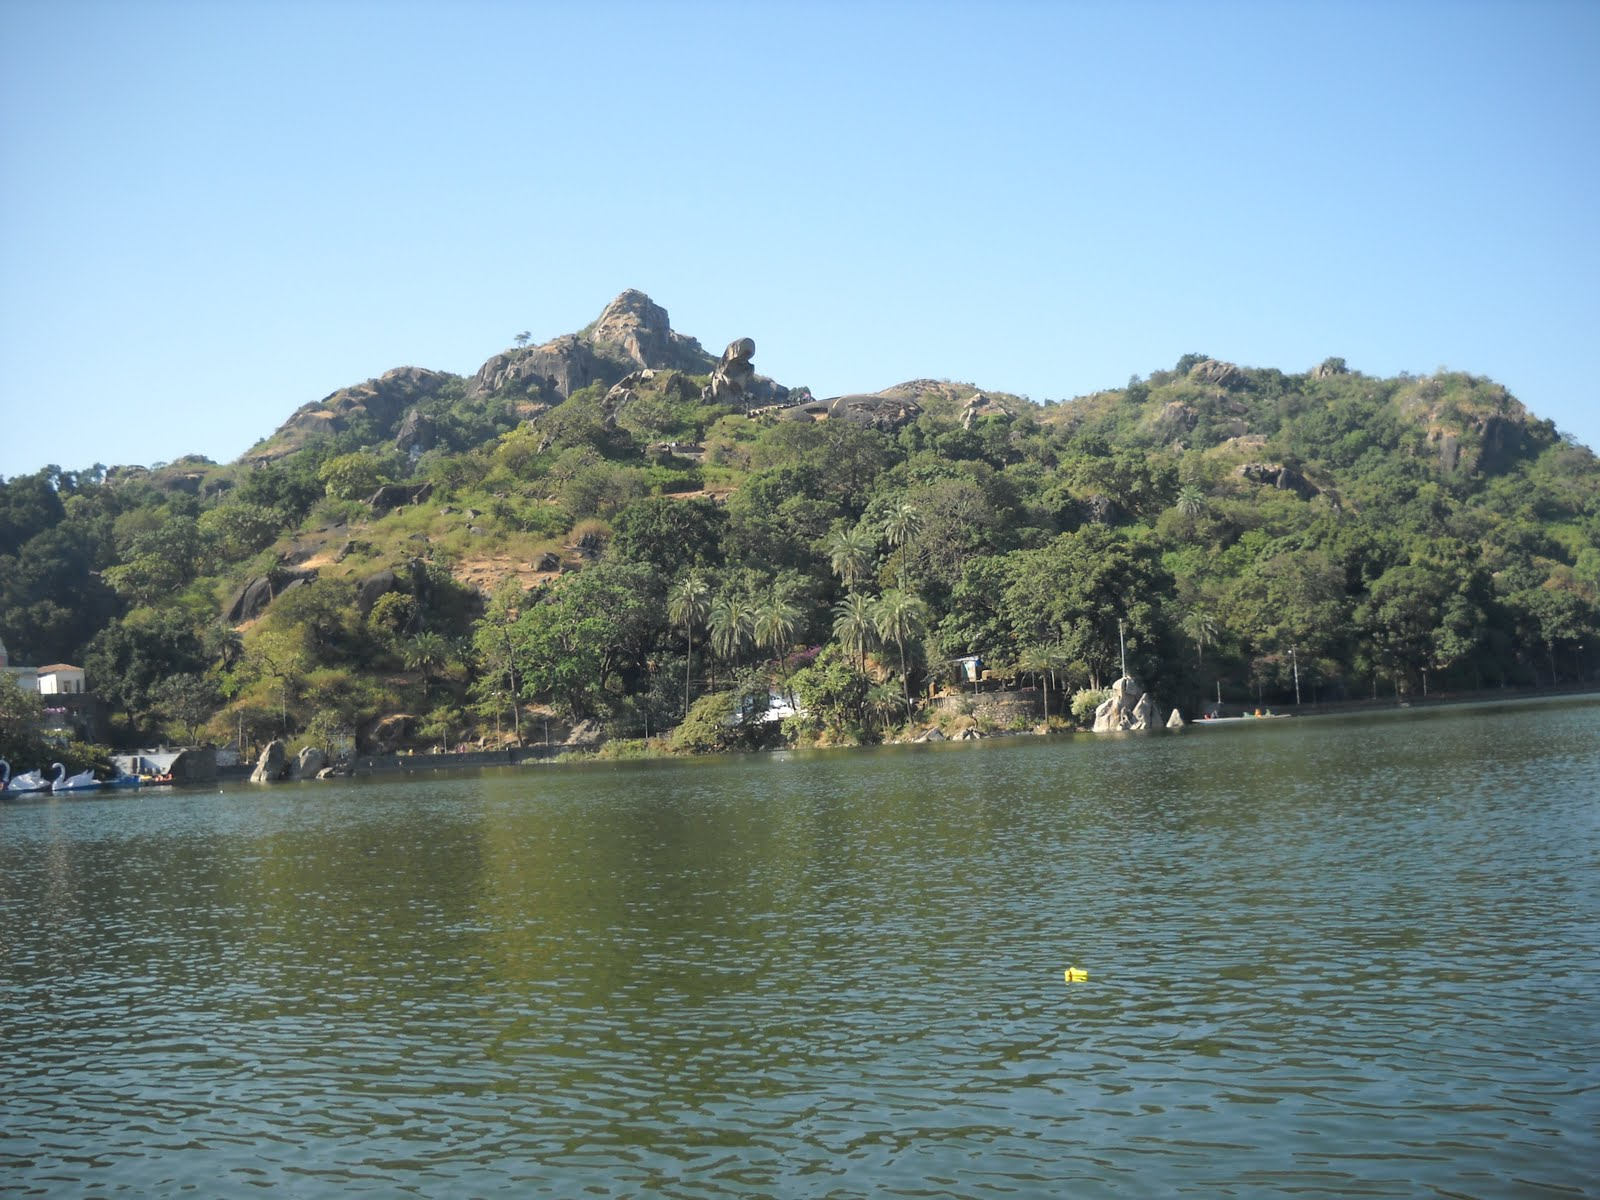 my favourite place is mount abu The mount abu observatory is located near the town mount abu in the state of rajasthan the observatory is at an altitude of 1680 metres and is adjacent to guru shikhar, highest peak of the aravalli range.